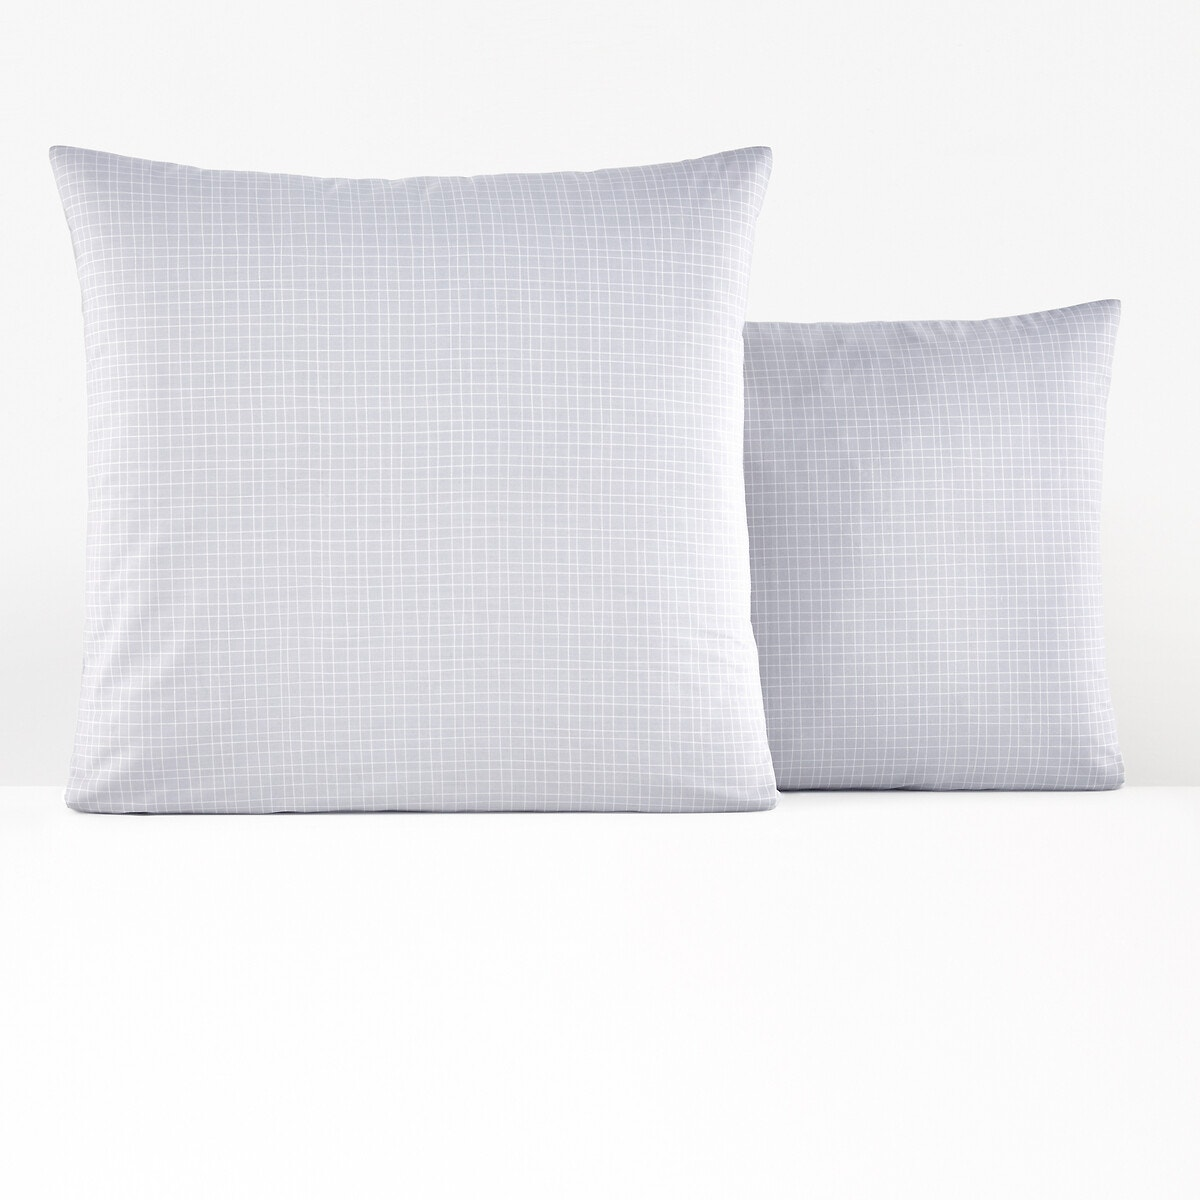 Square Best Quality Cotton Percale Pillowcase